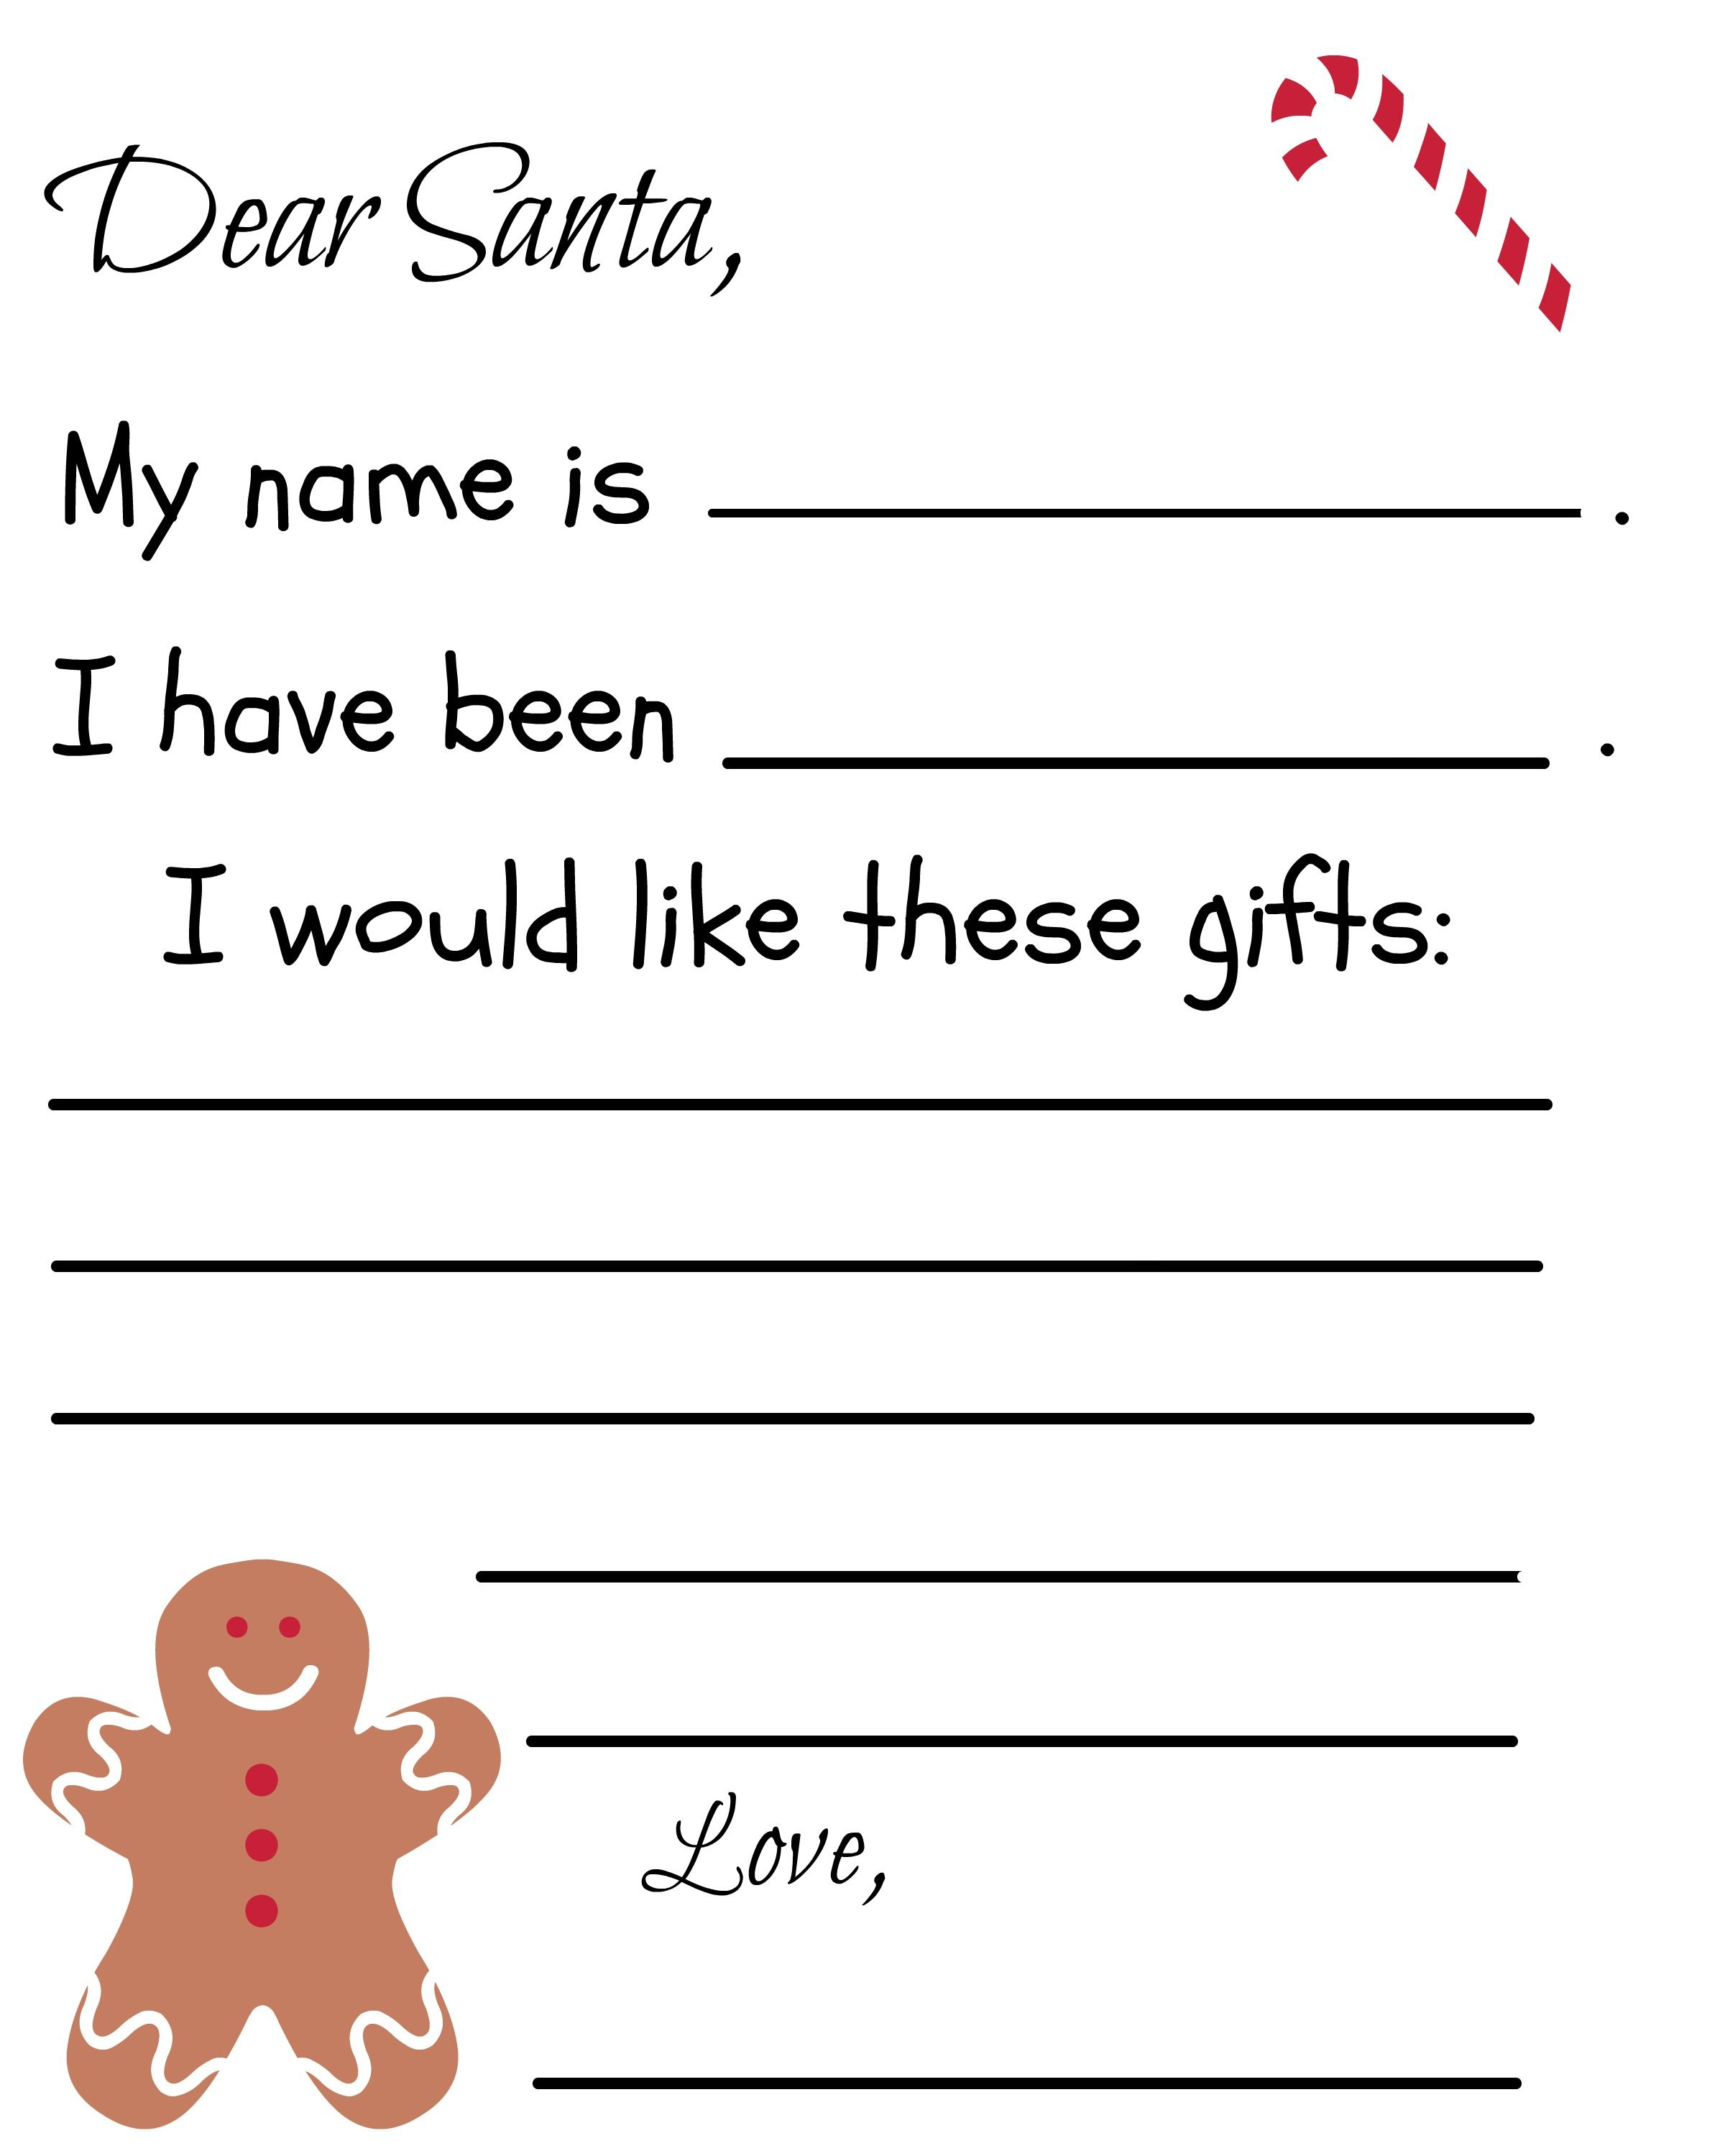 Dear Santa Letter Template Free - Free Printable Santa Letter Template